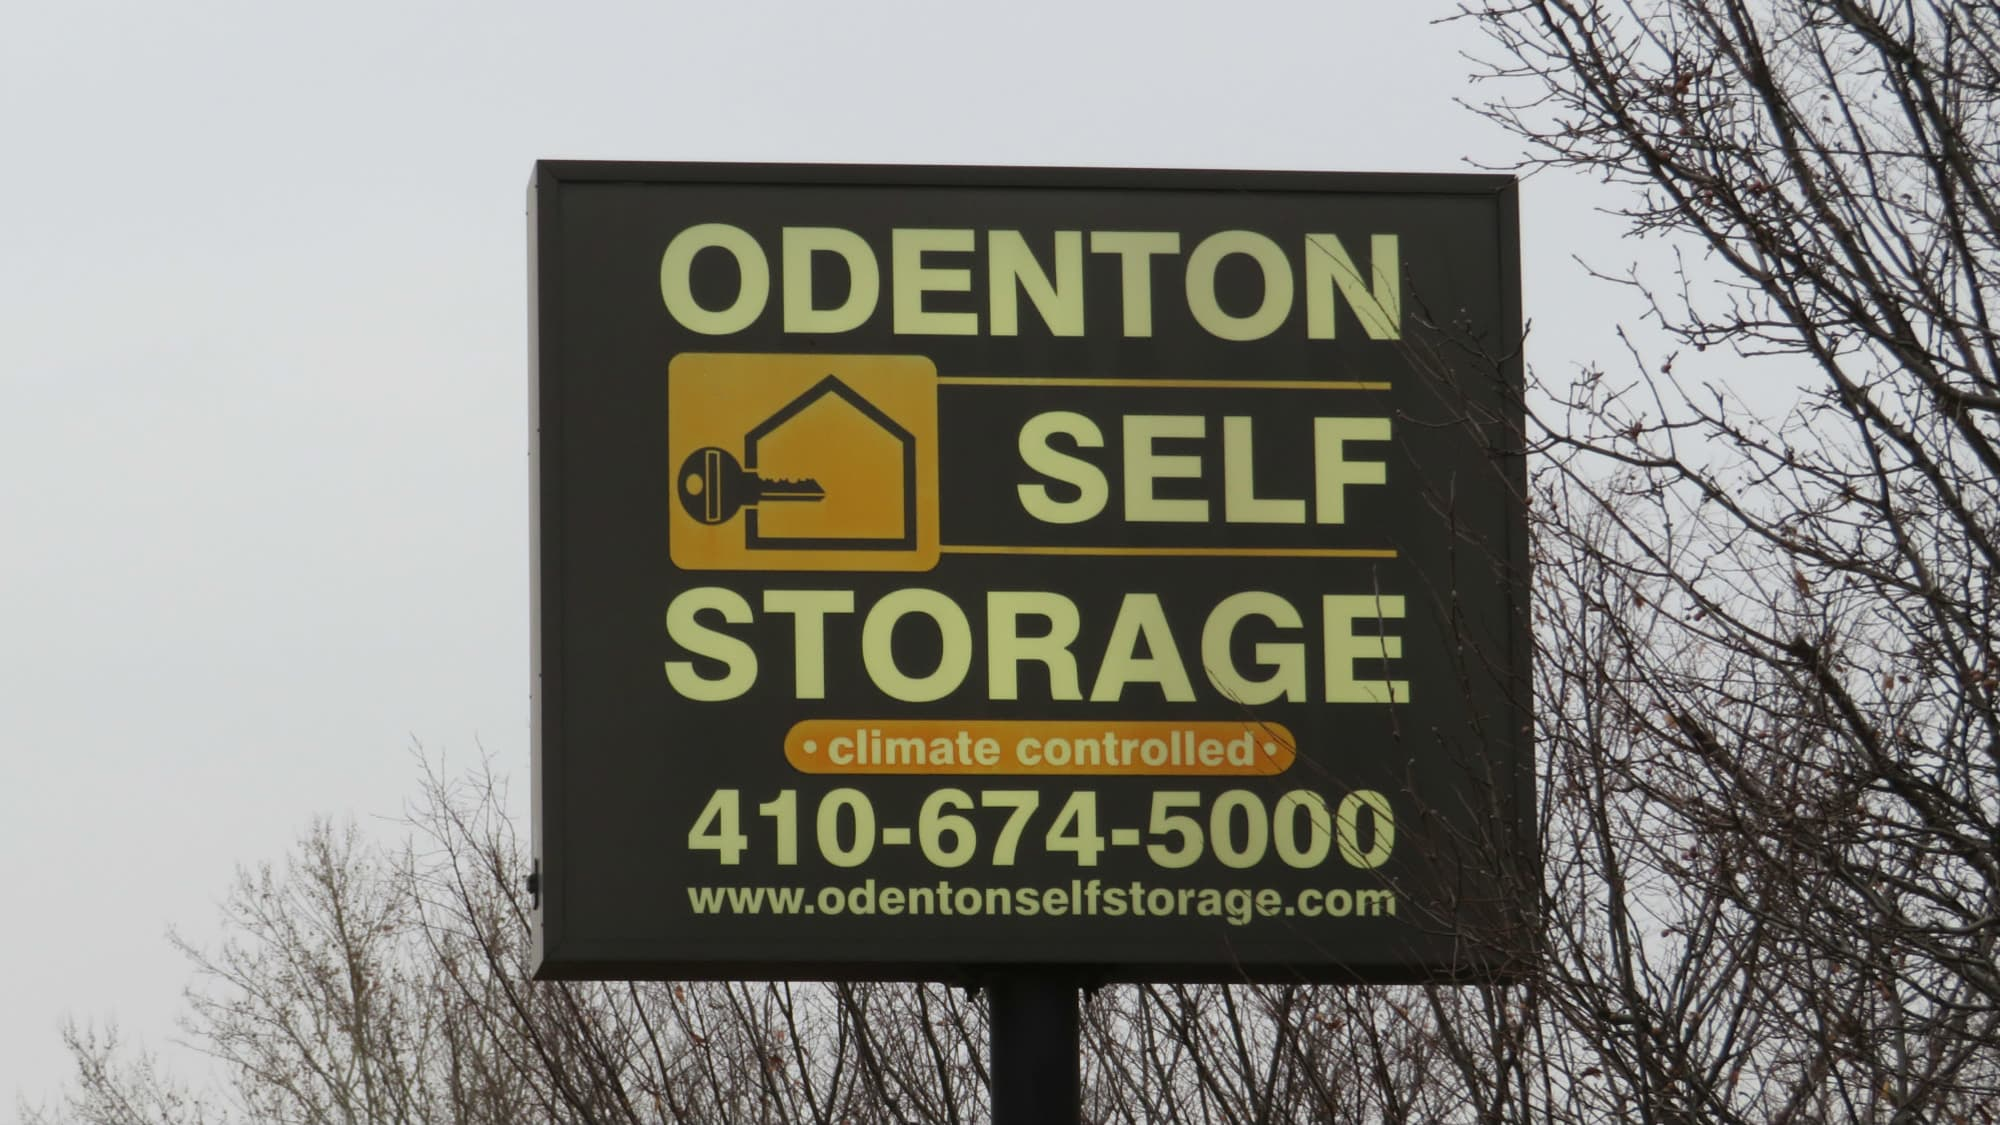 Welcome sign at Odenton Self Storage in Odenton, Maryland